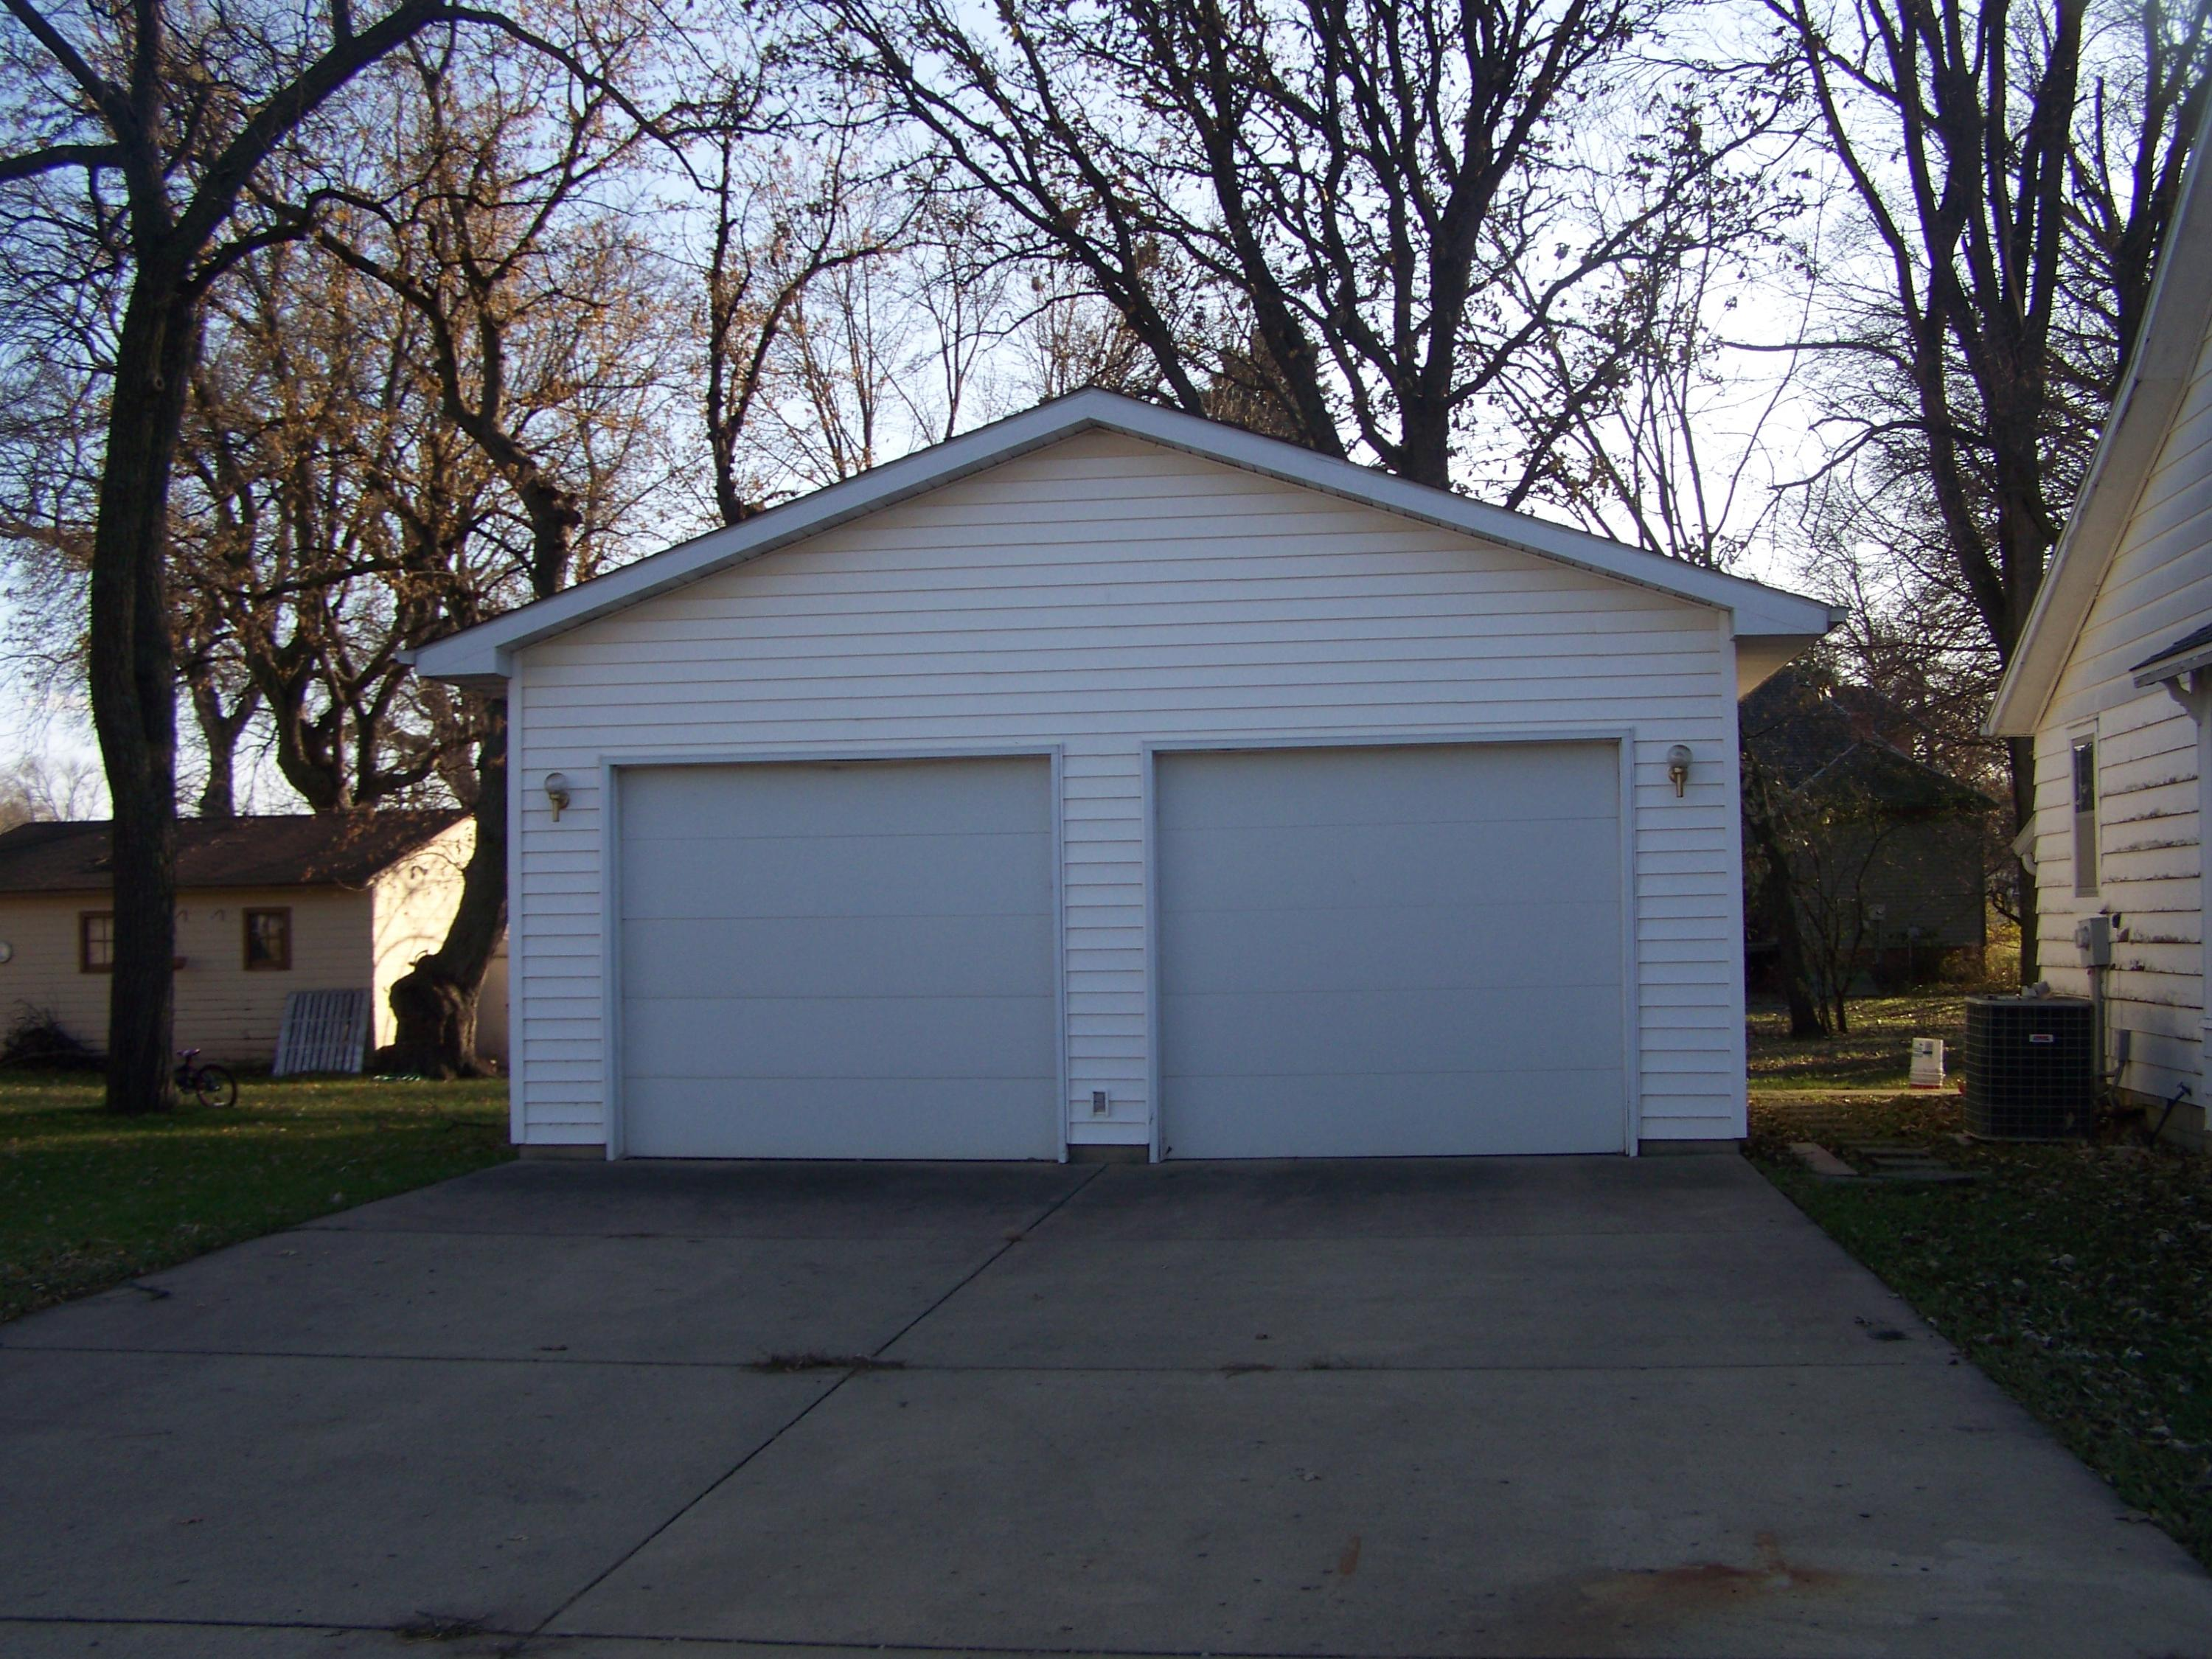 326 E 3rd Street Spencer Ia 51301 Remax Iowa Residential Electric Windows Open Living And Kitchen Floor Plan Roof On Main House Is 10 Years Old Oversized Two Car Garage Added In 1995 Home All Are 3